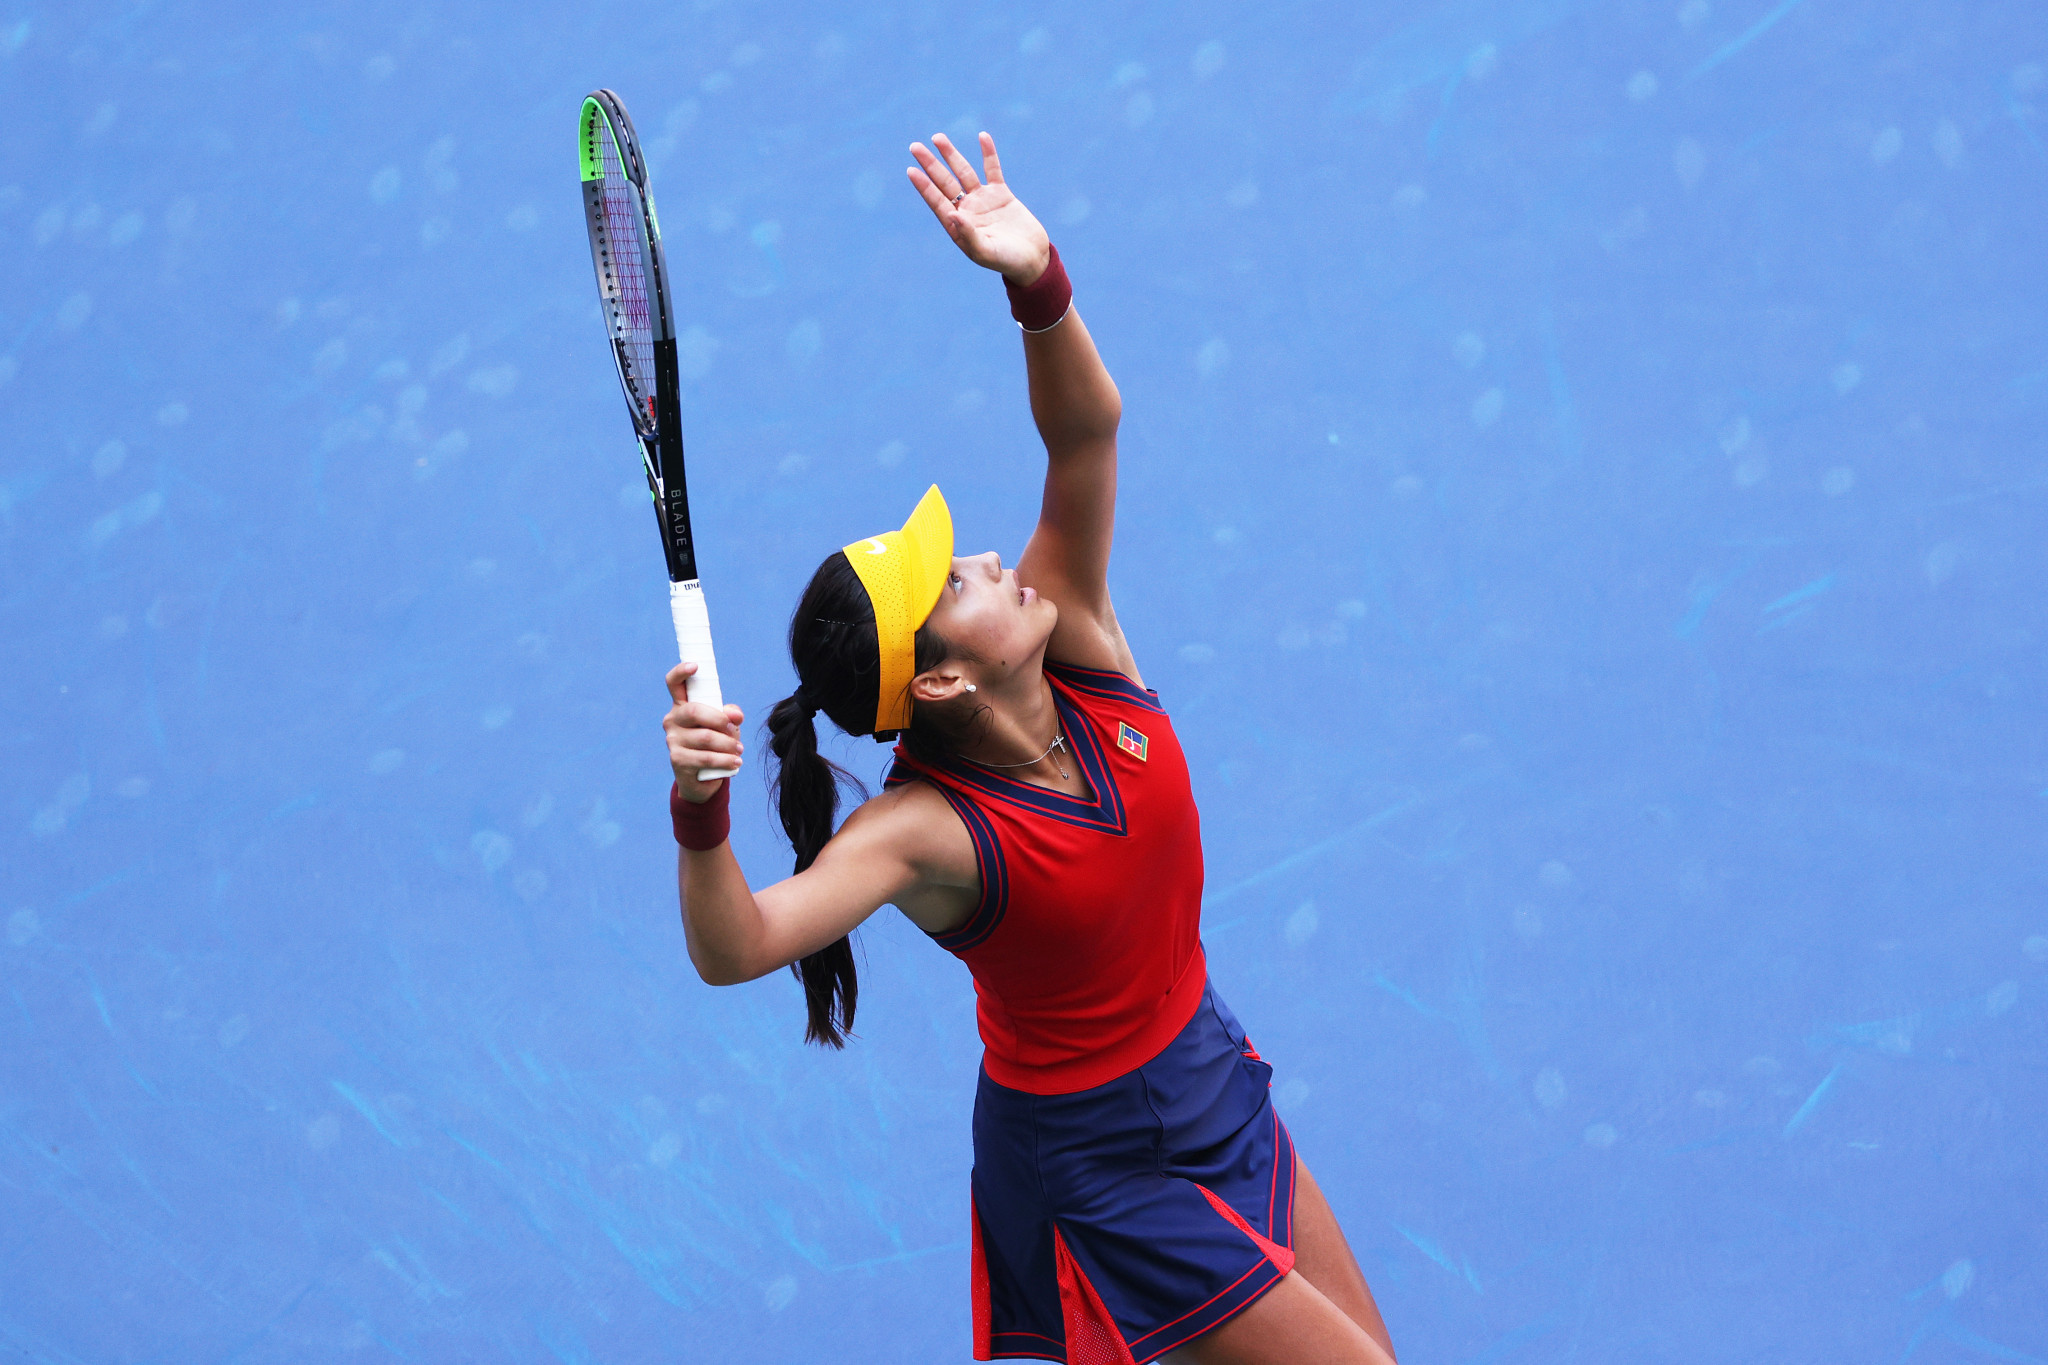 Remarkable Raducanu knocks out Olympic champion to reach US Open semi-finals